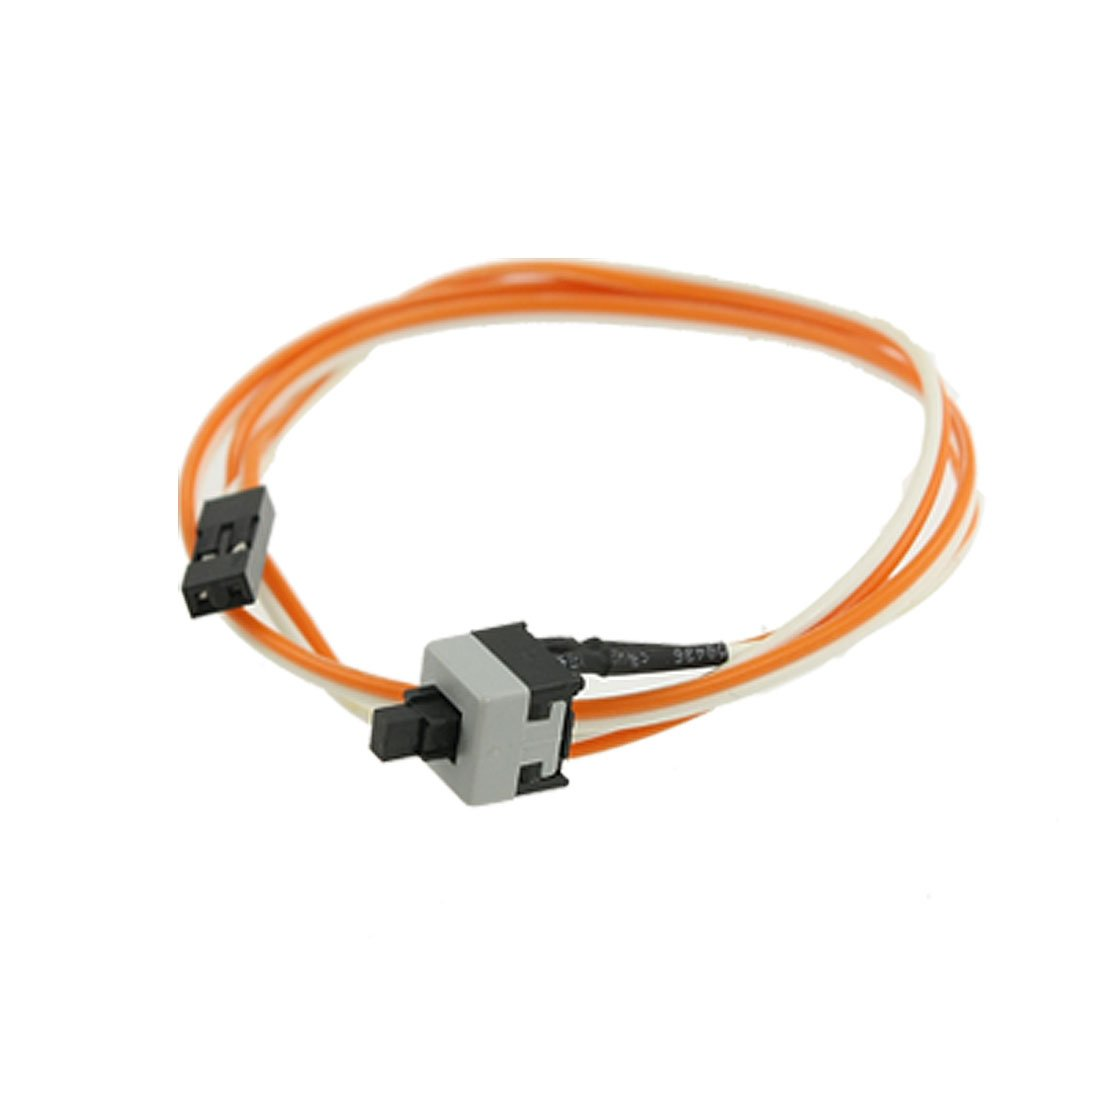 Wiring A Pc Power Switch Computer Wire Diagrams Amazon Com Replacement Button Cable For How To